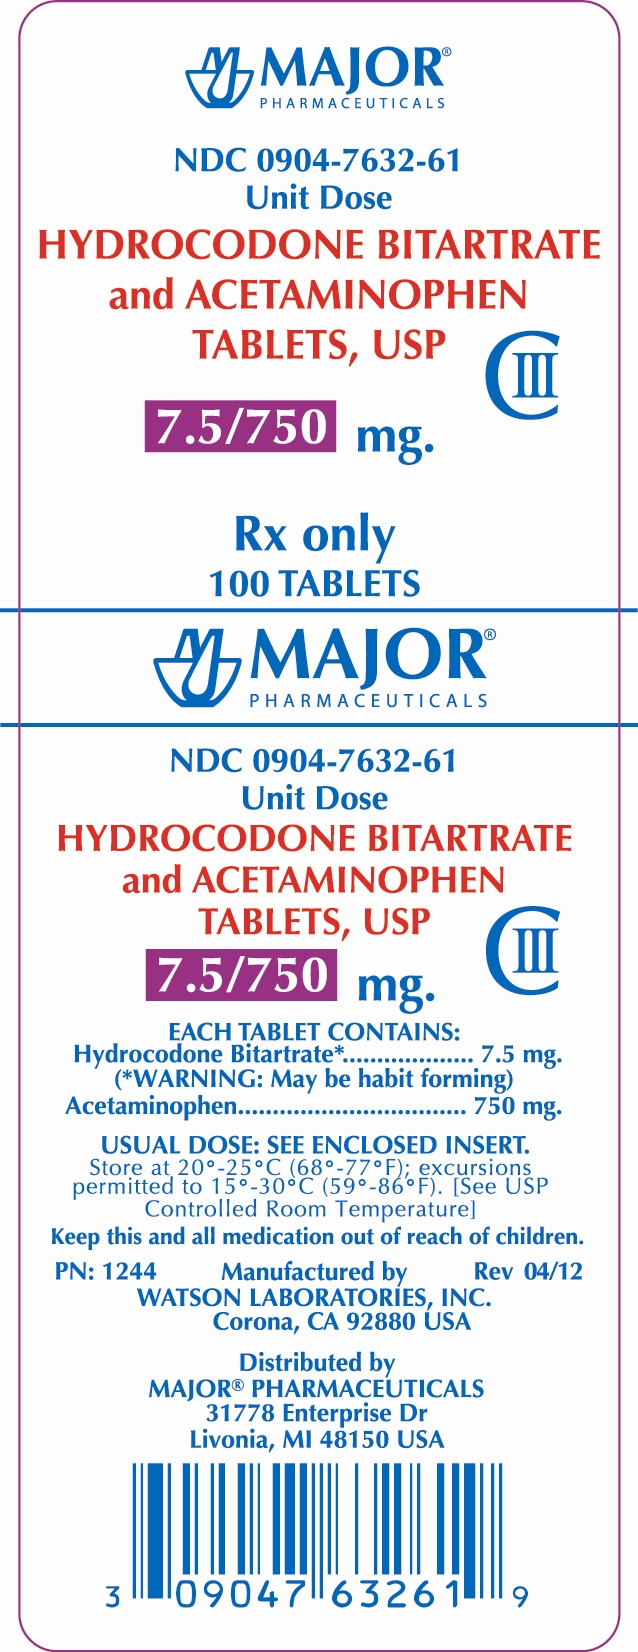 PRINCIPAL DISPLAY PANEL HYDROCODONE BITARTRATE AND ACETAMINOPHEN TABLETS USP 7.5/750MG